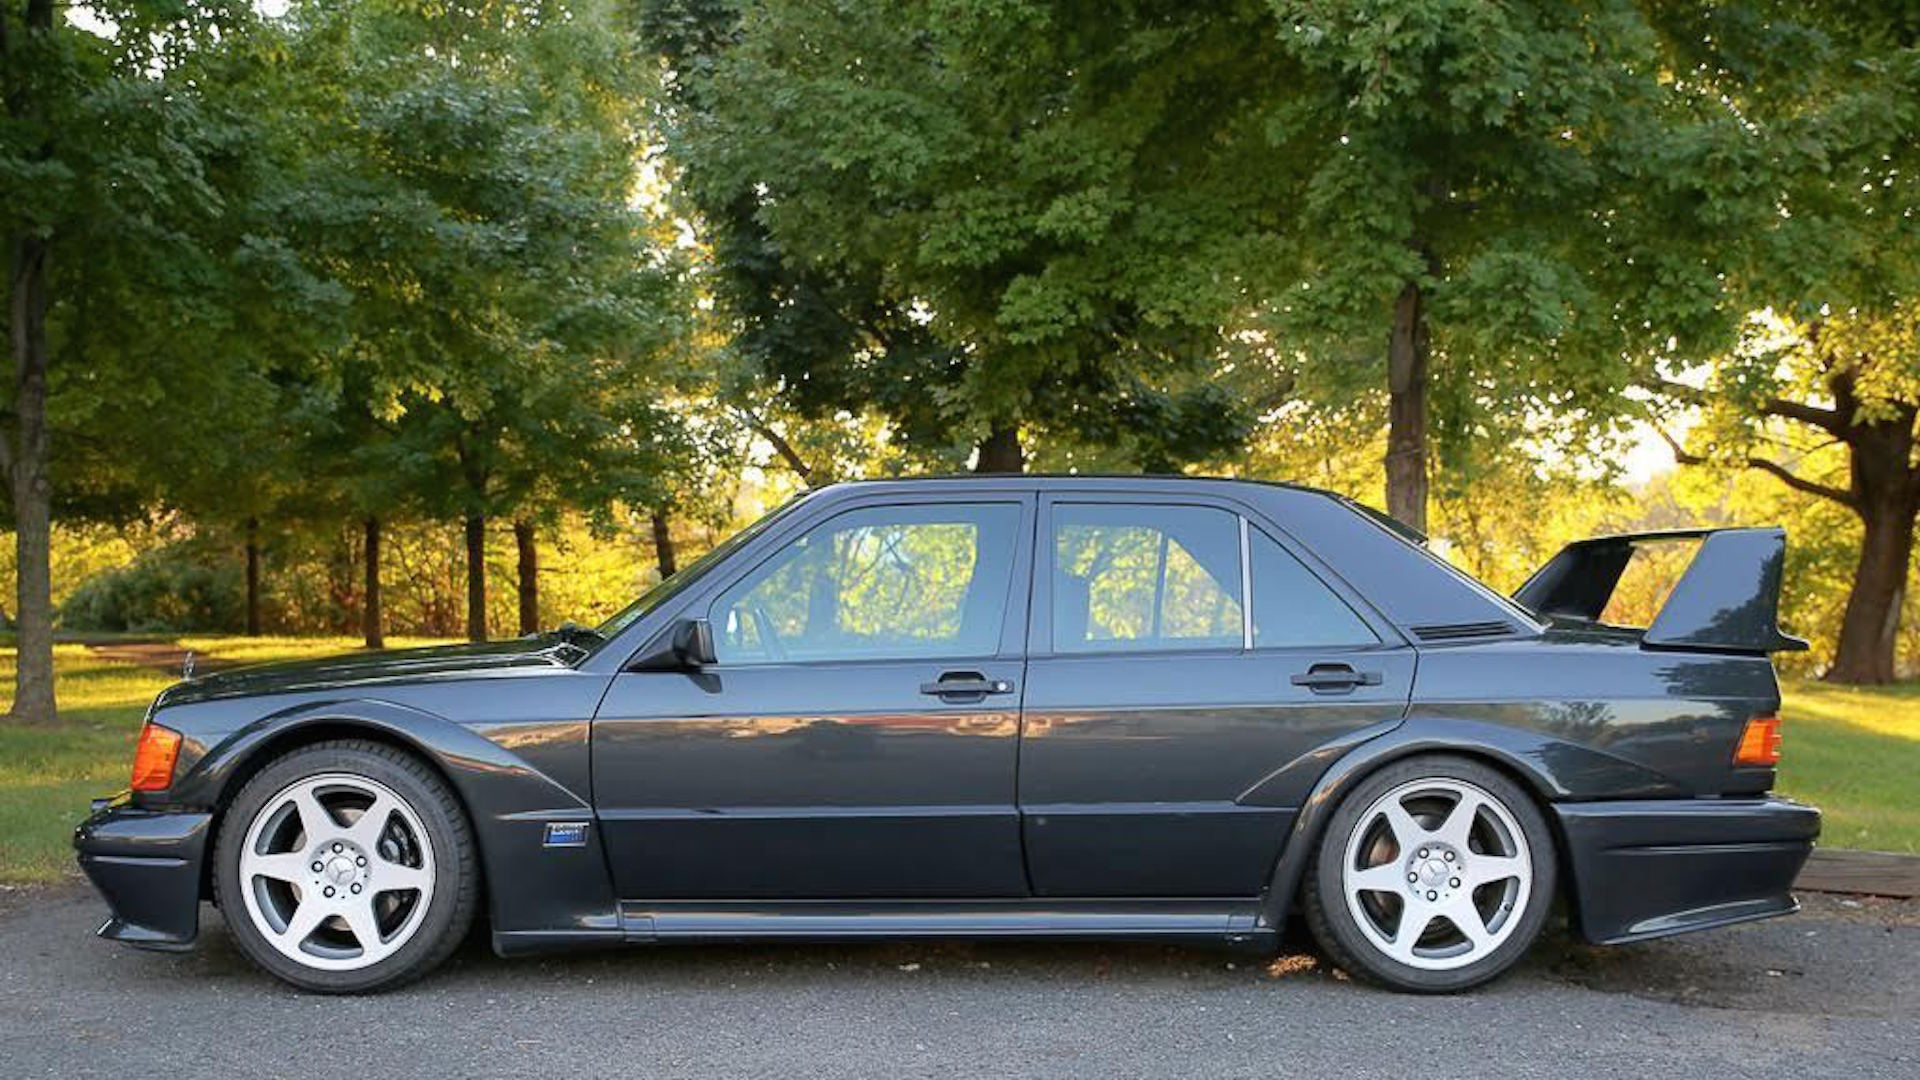 1990 mercedes benz 190e cosworth evo ii on ebay with for 1990s mercedes benz